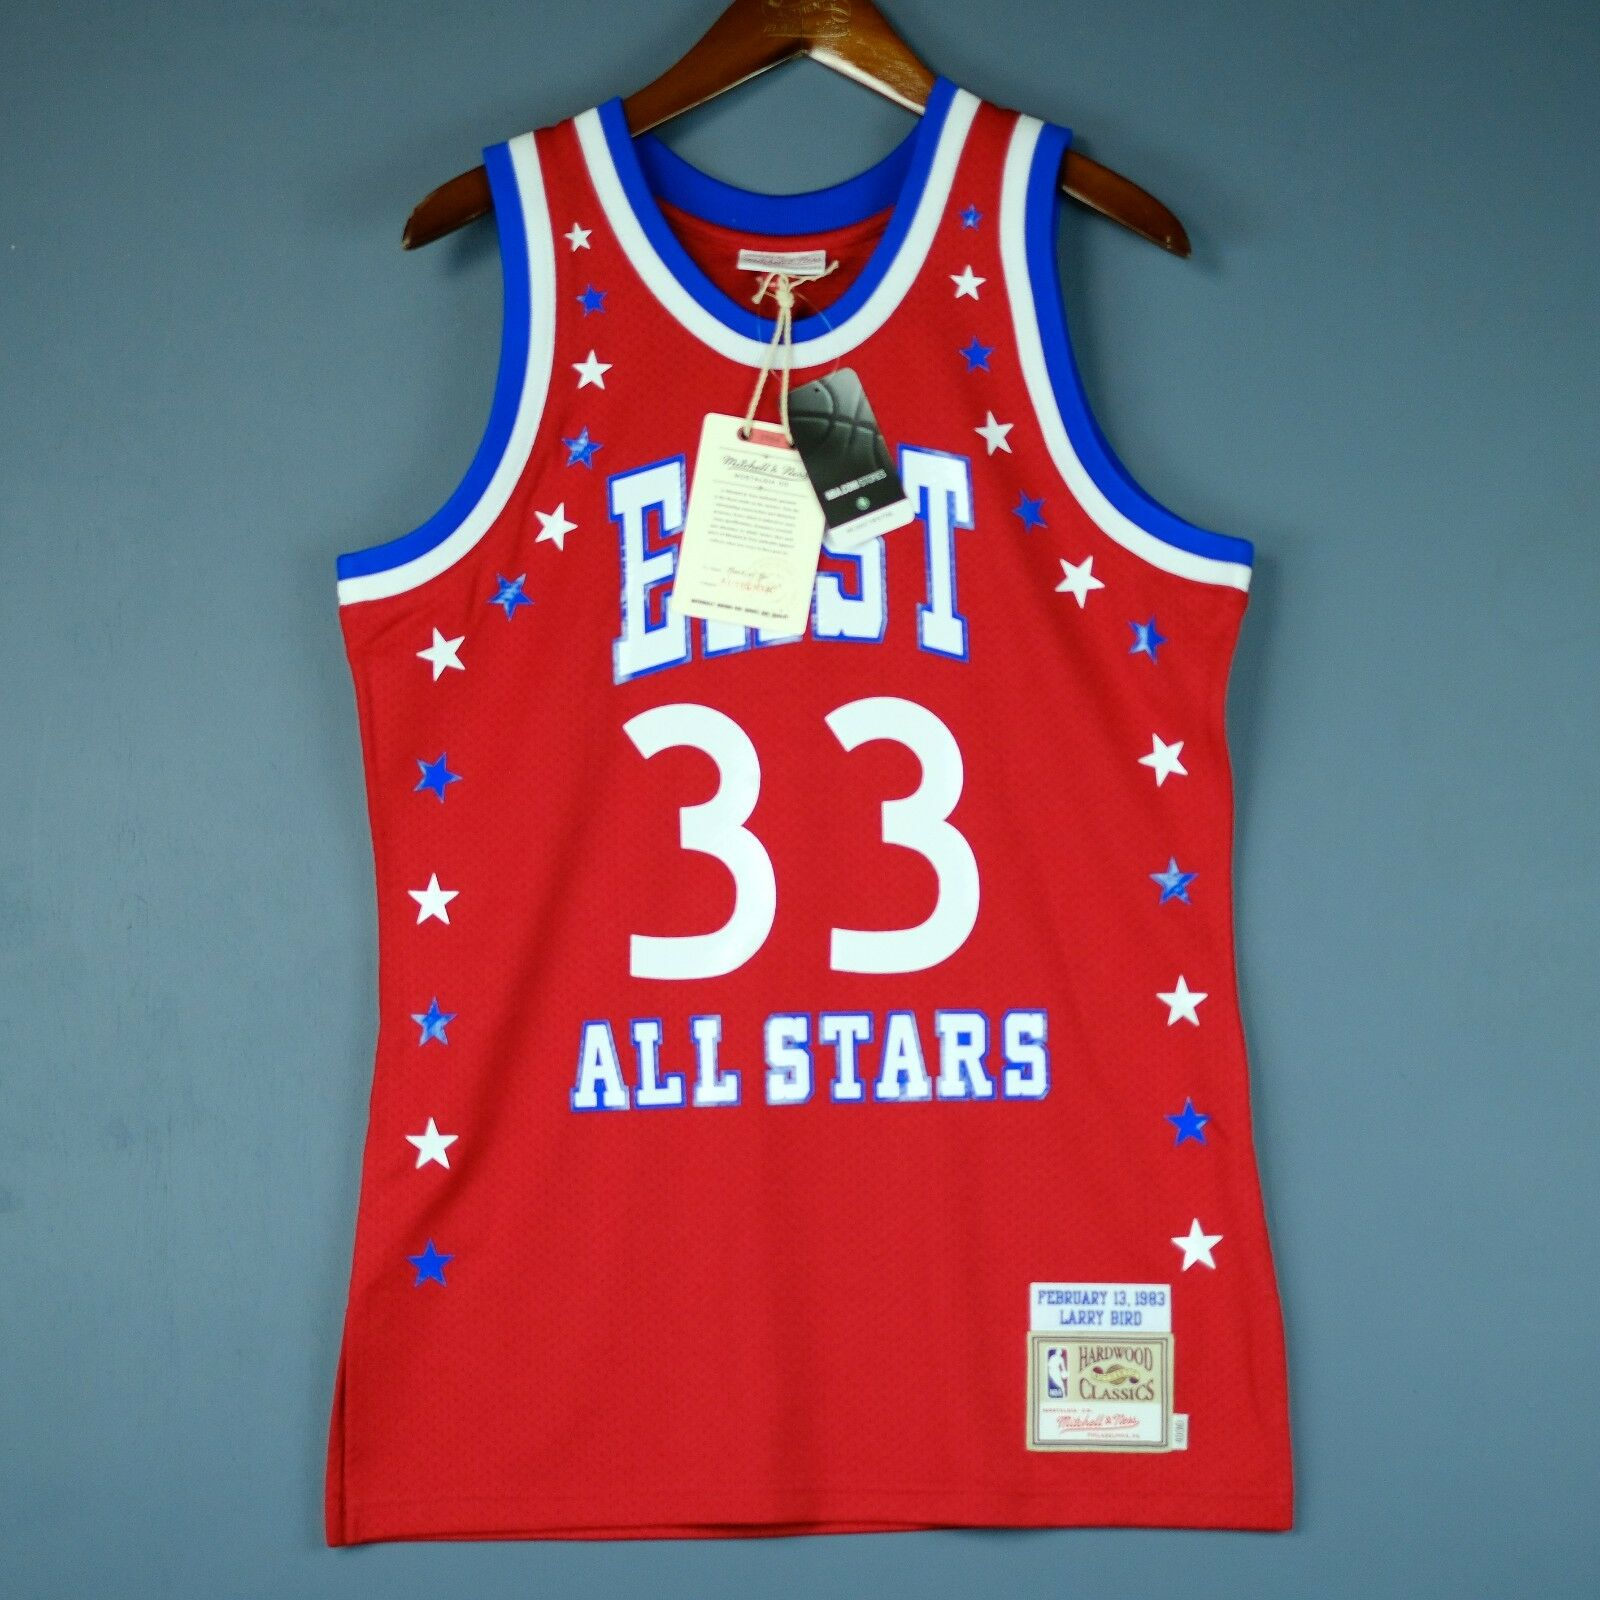 100% Authentic Larry Bird Mitchell & Ness 1983 All Star Game Jersey Size 36 S